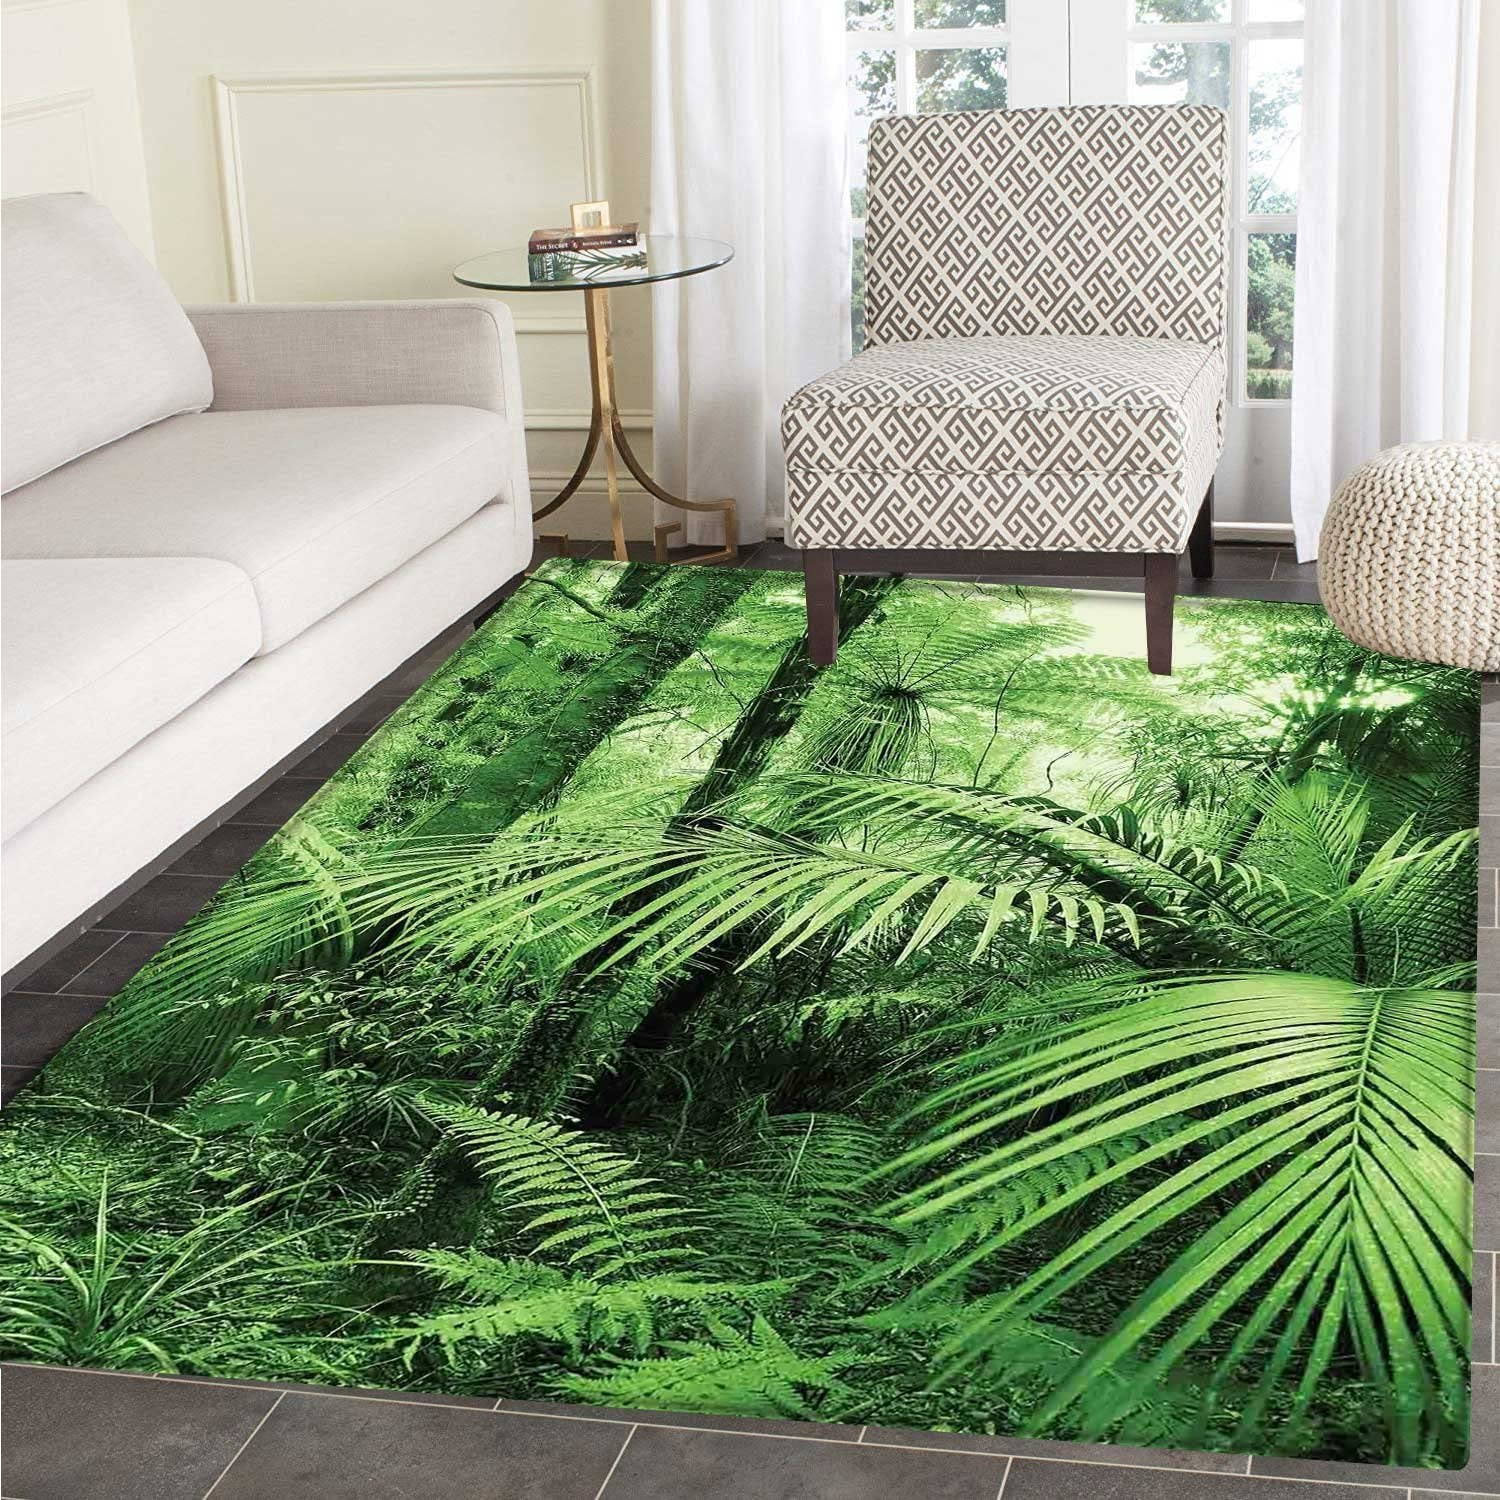 Rainforest Floor Mat Pattern Palm Trees and Exotic Plants in Tropical Jungle Wild Nature Zen Theme Illustration Living Dinning Room & Bedroom Mats 5'x6' Green